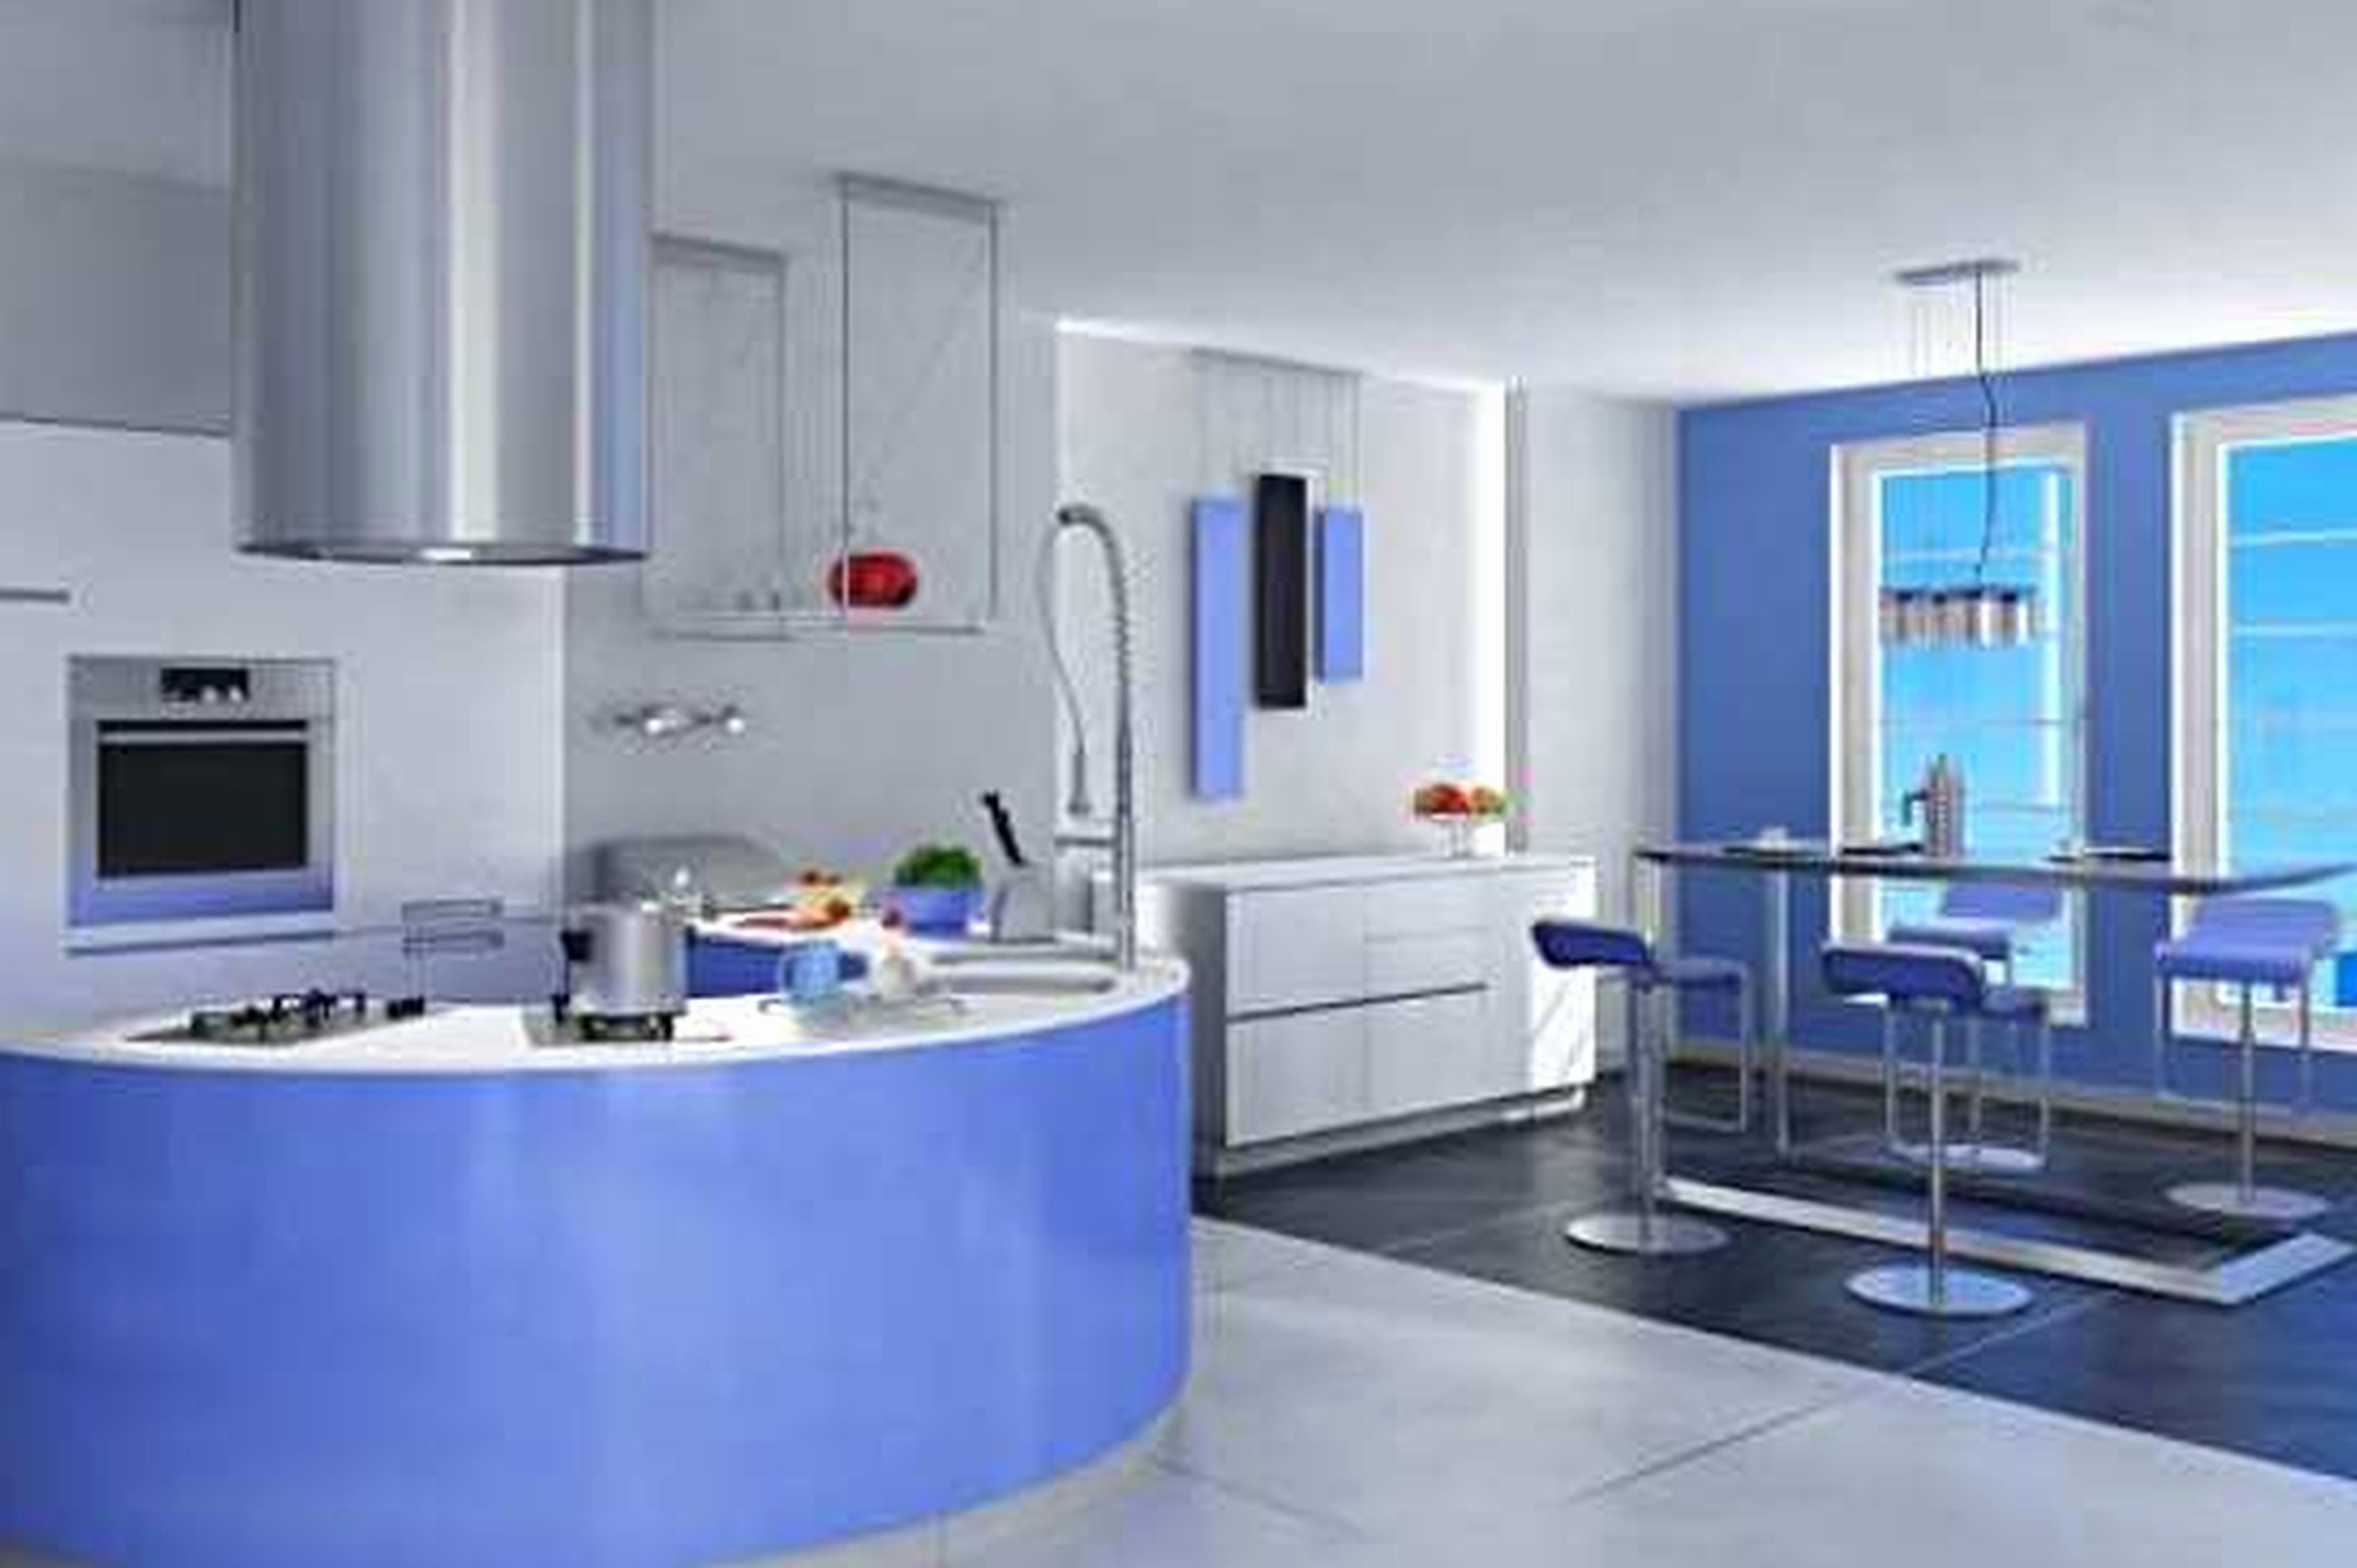 Modern kitchen ideas 2012 Trends Kitchen Design Ideas 2012 Netyeahinfo Kitchen Design Ideas 2012 Kitchen Design In 2018 Pinterest